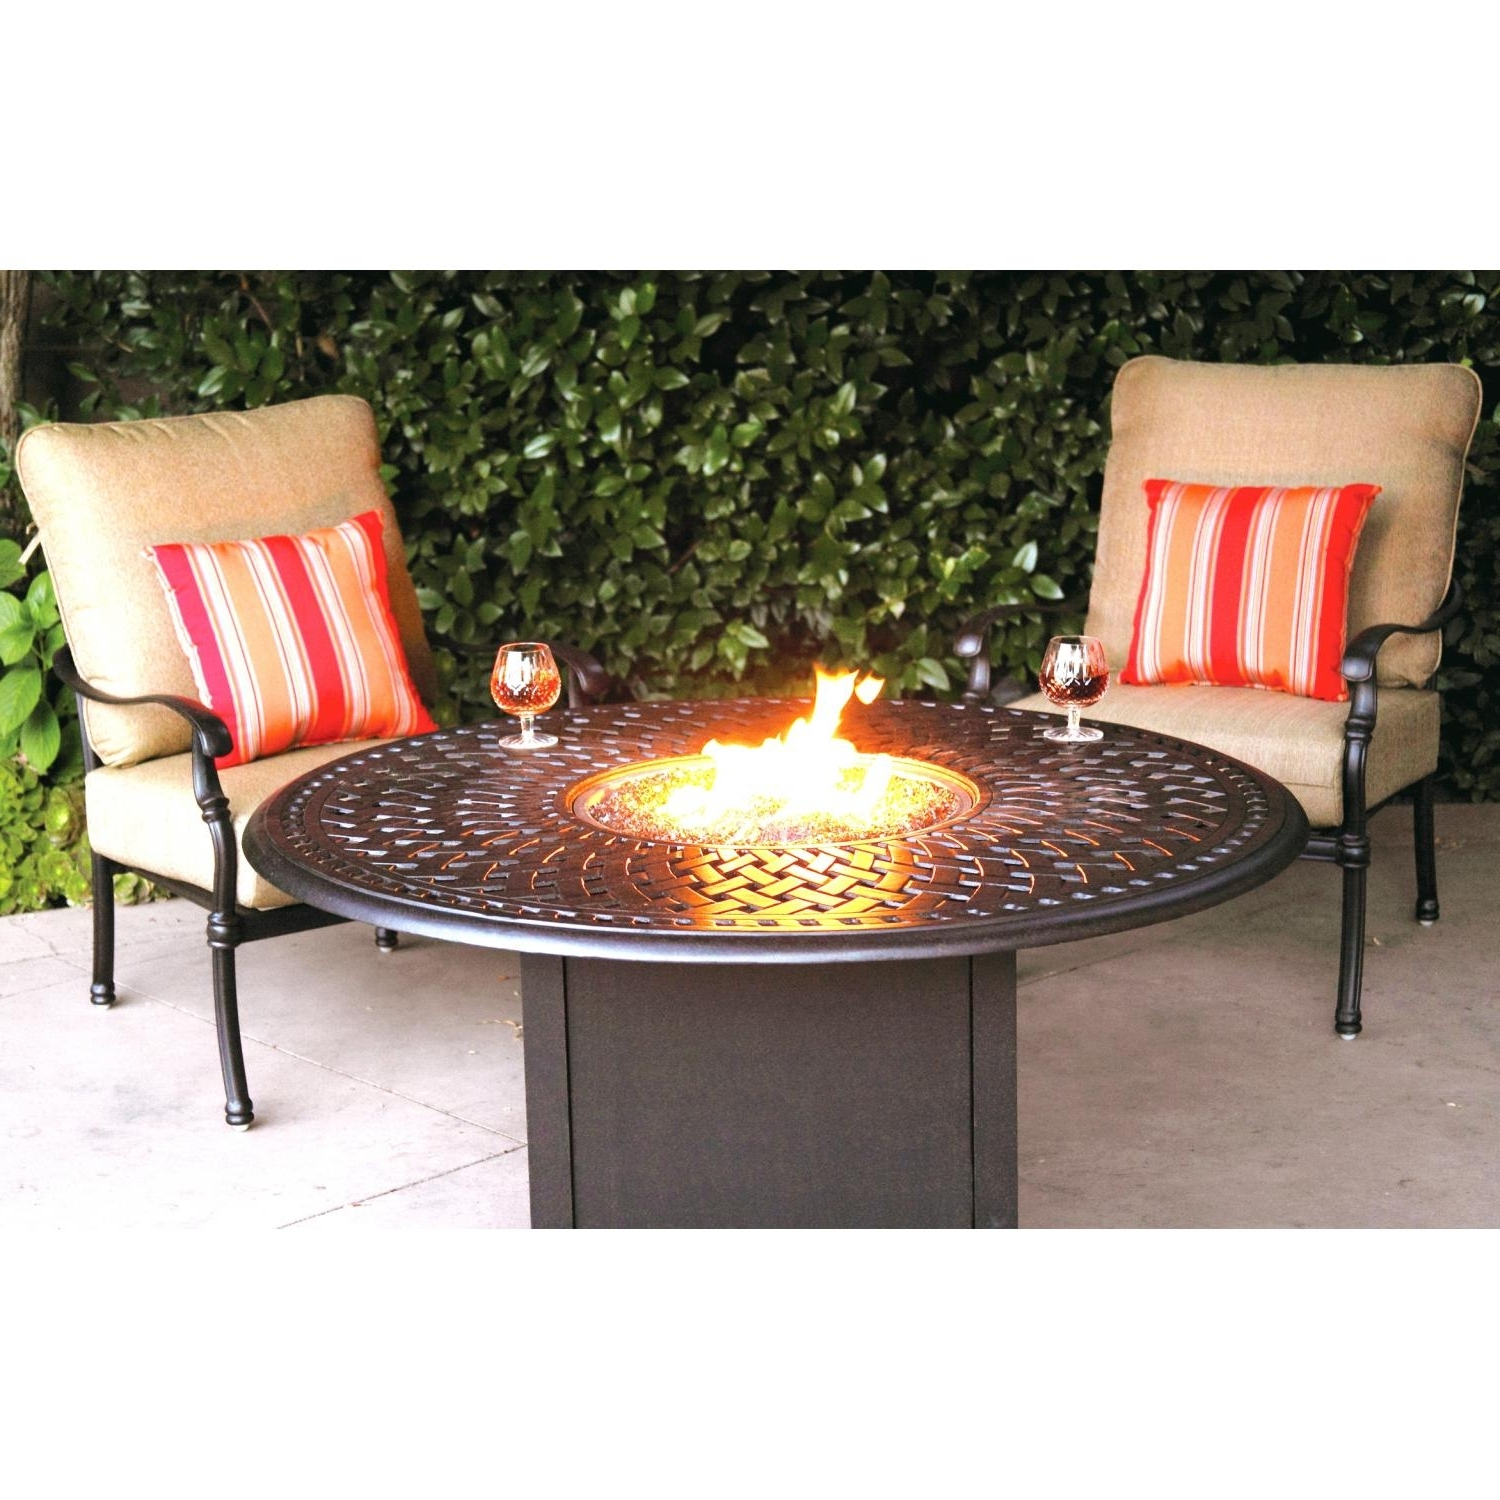 Famous Darlee Florence 3 Piece Aluminum Patio Fire Pit Seating Set Intended For Patio Furniture Conversation Sets With Fire Pit (View 5 of 15)